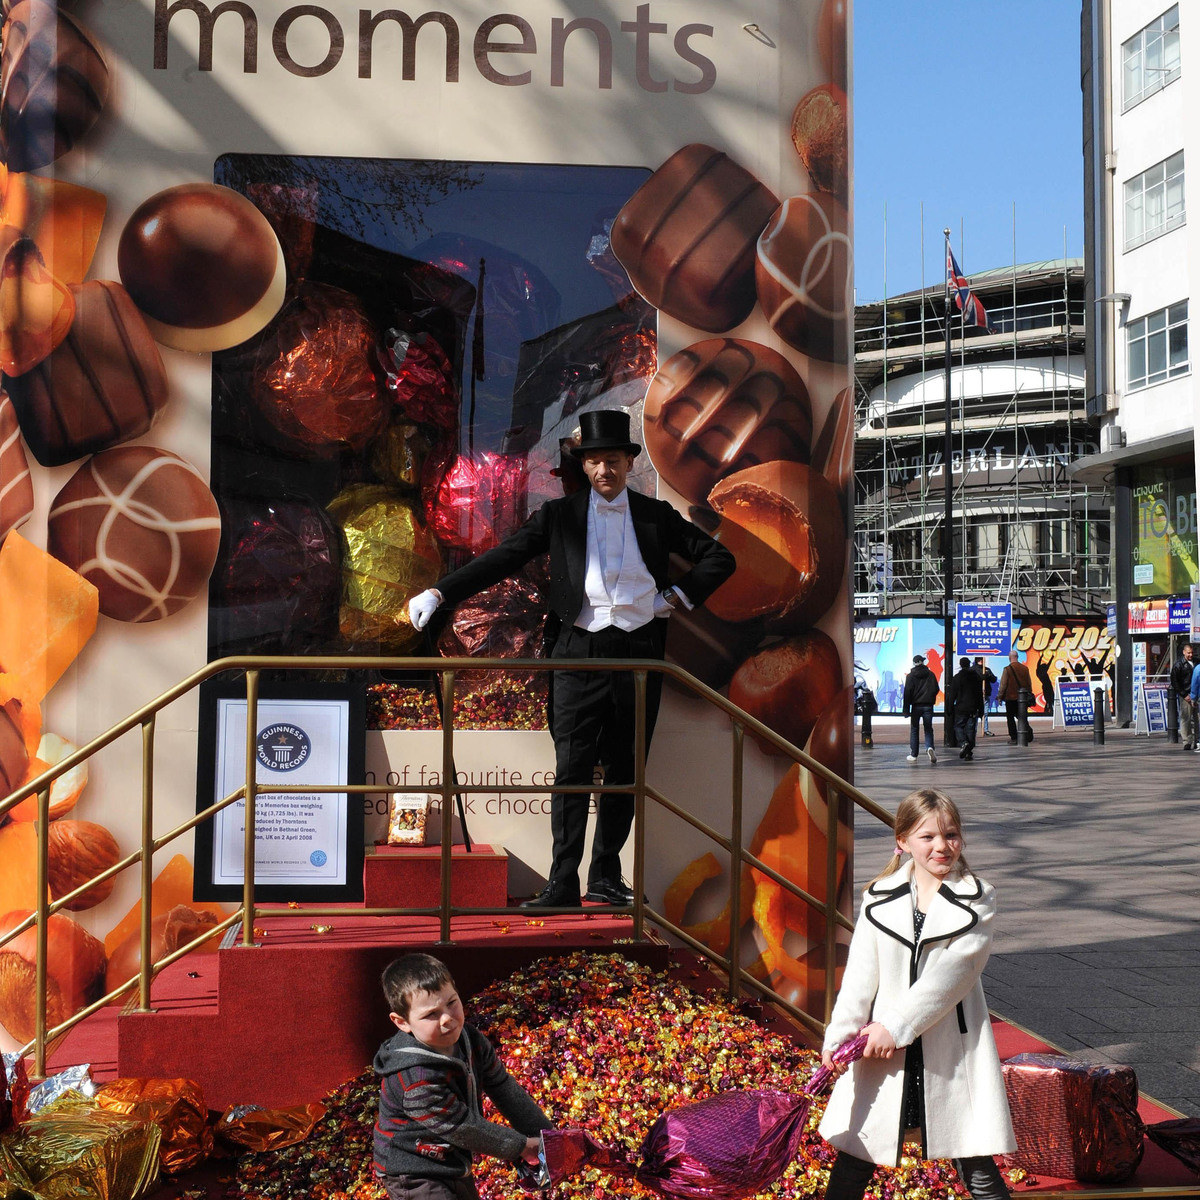 A man and two children stand in front of the largest box of chocolates.